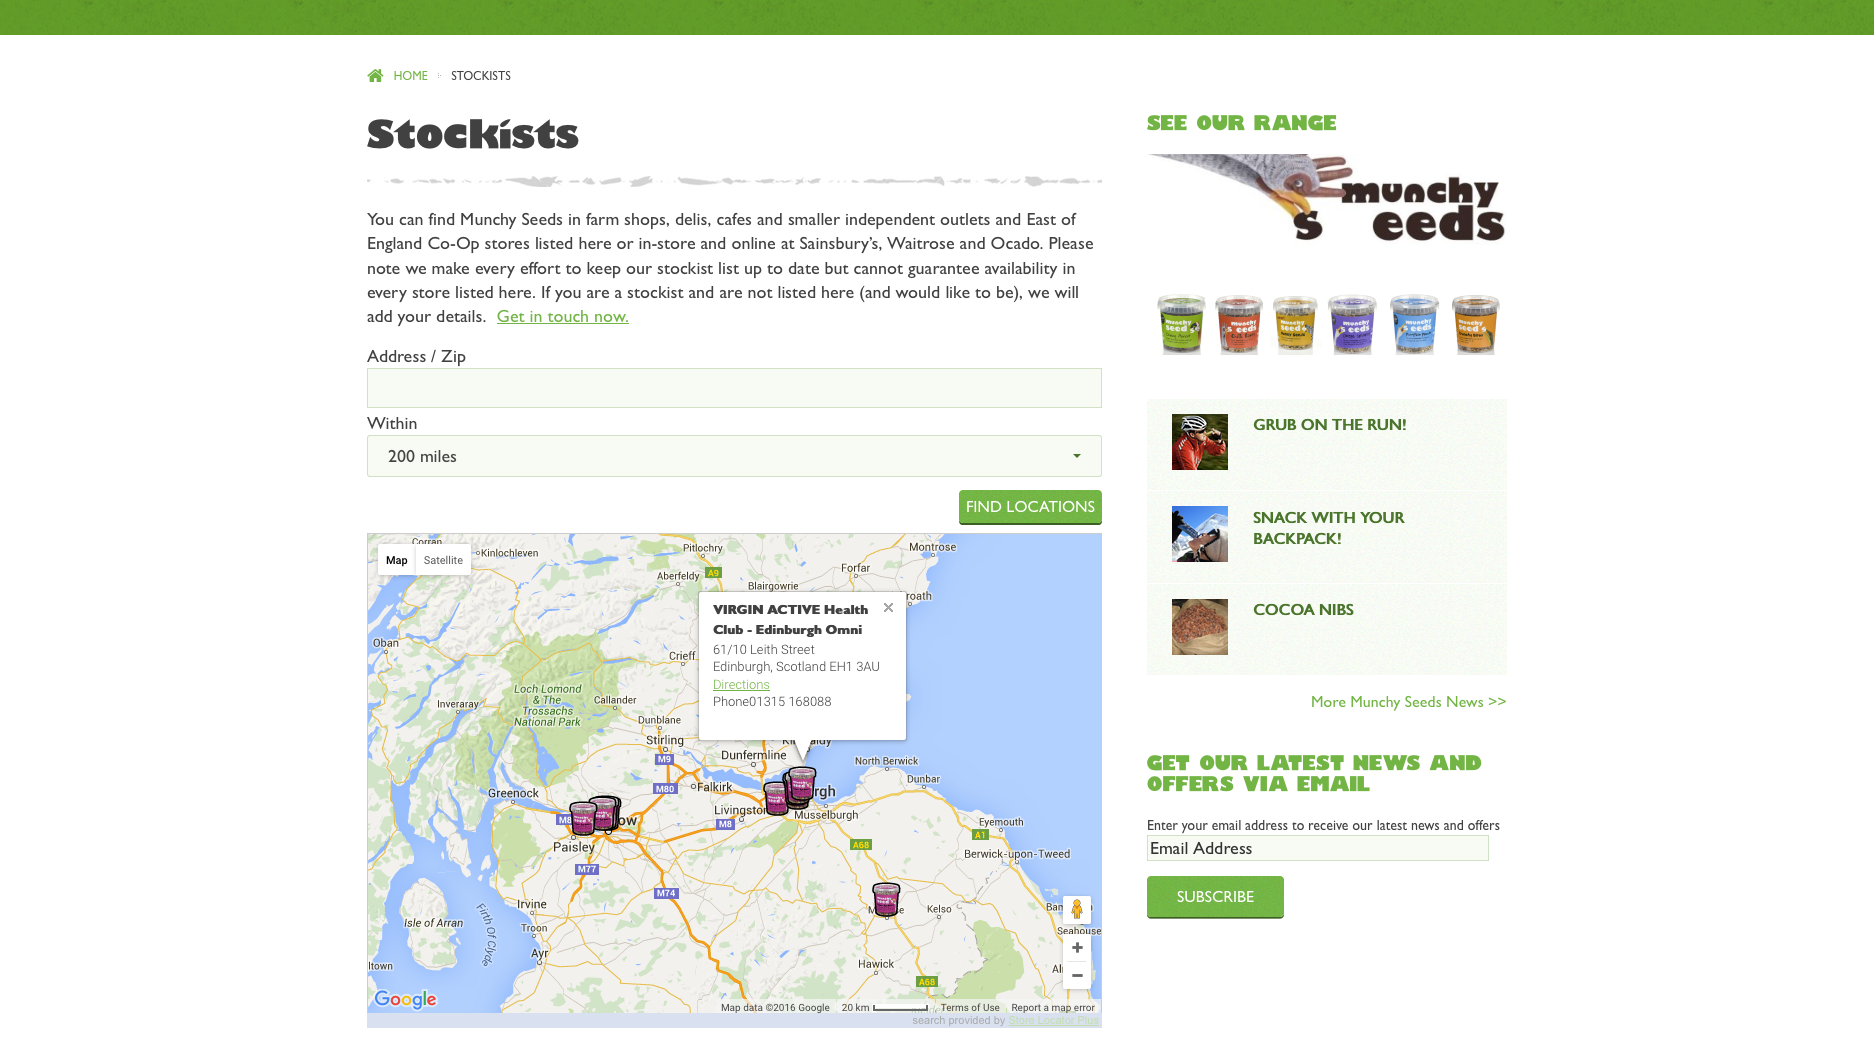 Munchy seeds website